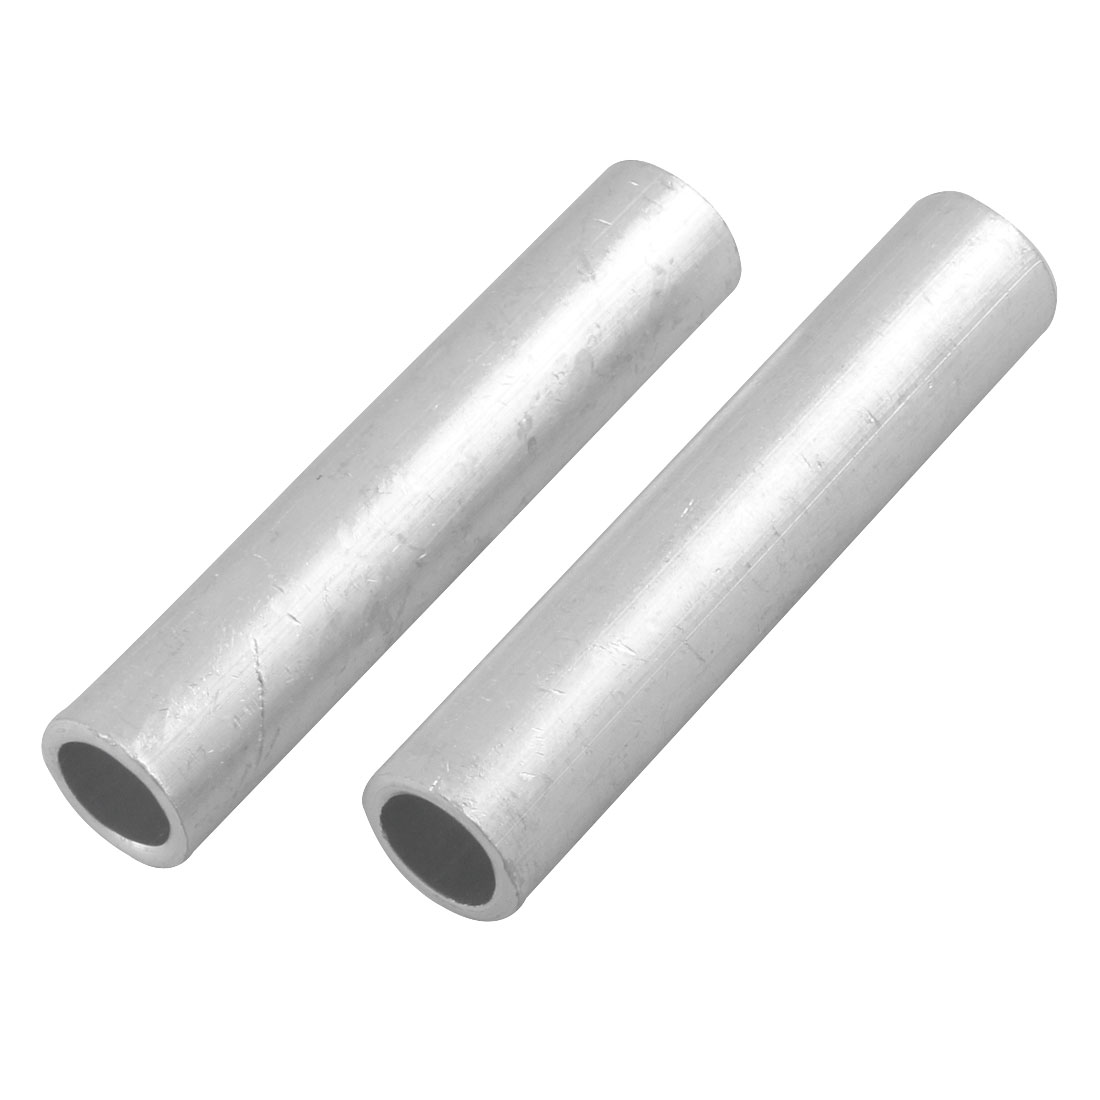 2-Pcs-3-2-Long-12mm-Inner-Diameter-Hole-Passing-Aluminum-Connecting-Tube-Pipe